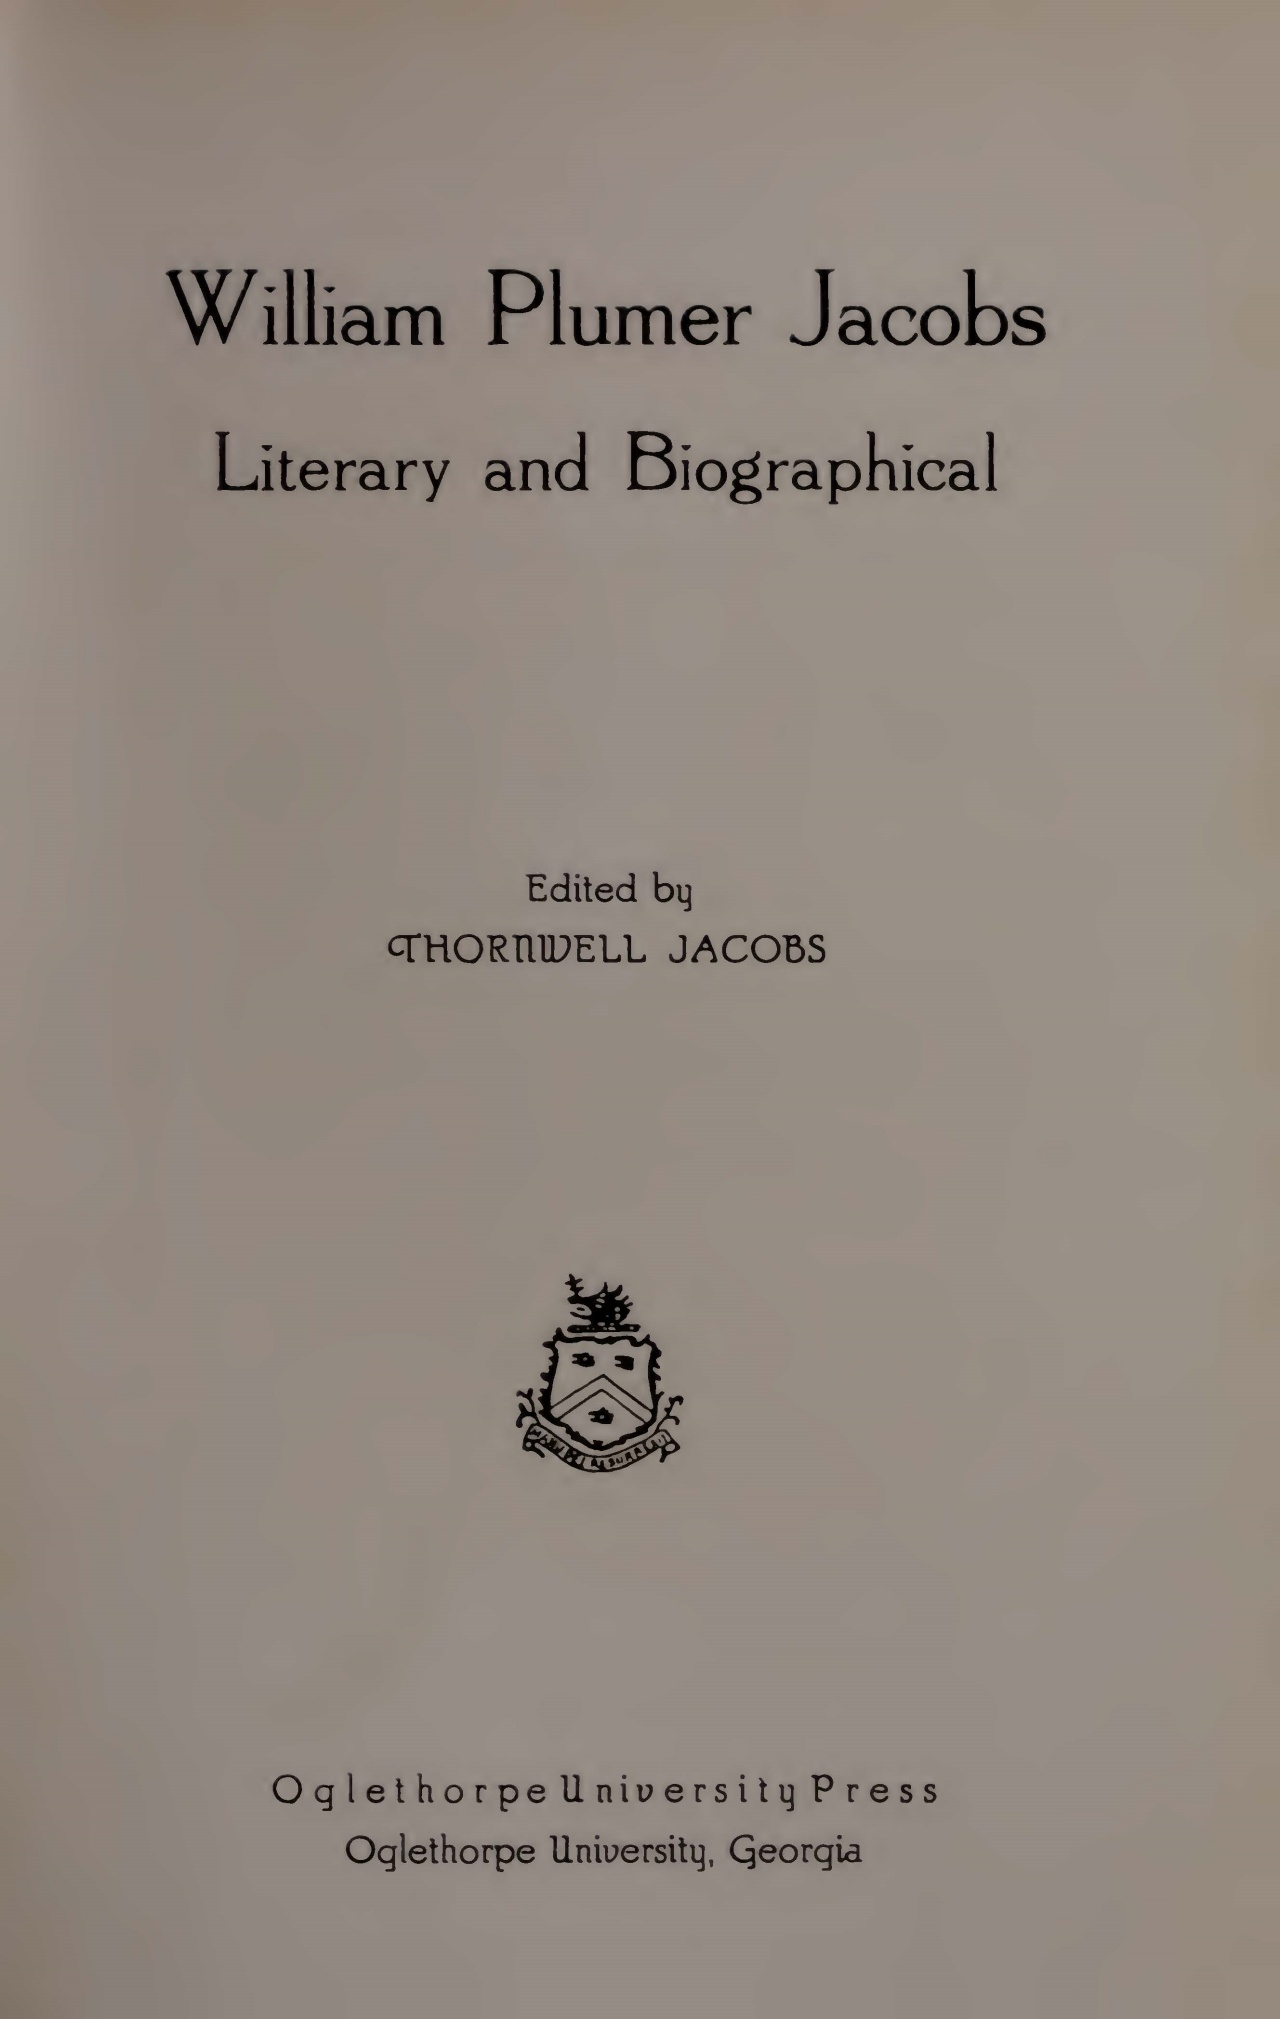 Jacobs, Thornwell, William Plumer Jacobs Literary and Biographical Title Page.jpg